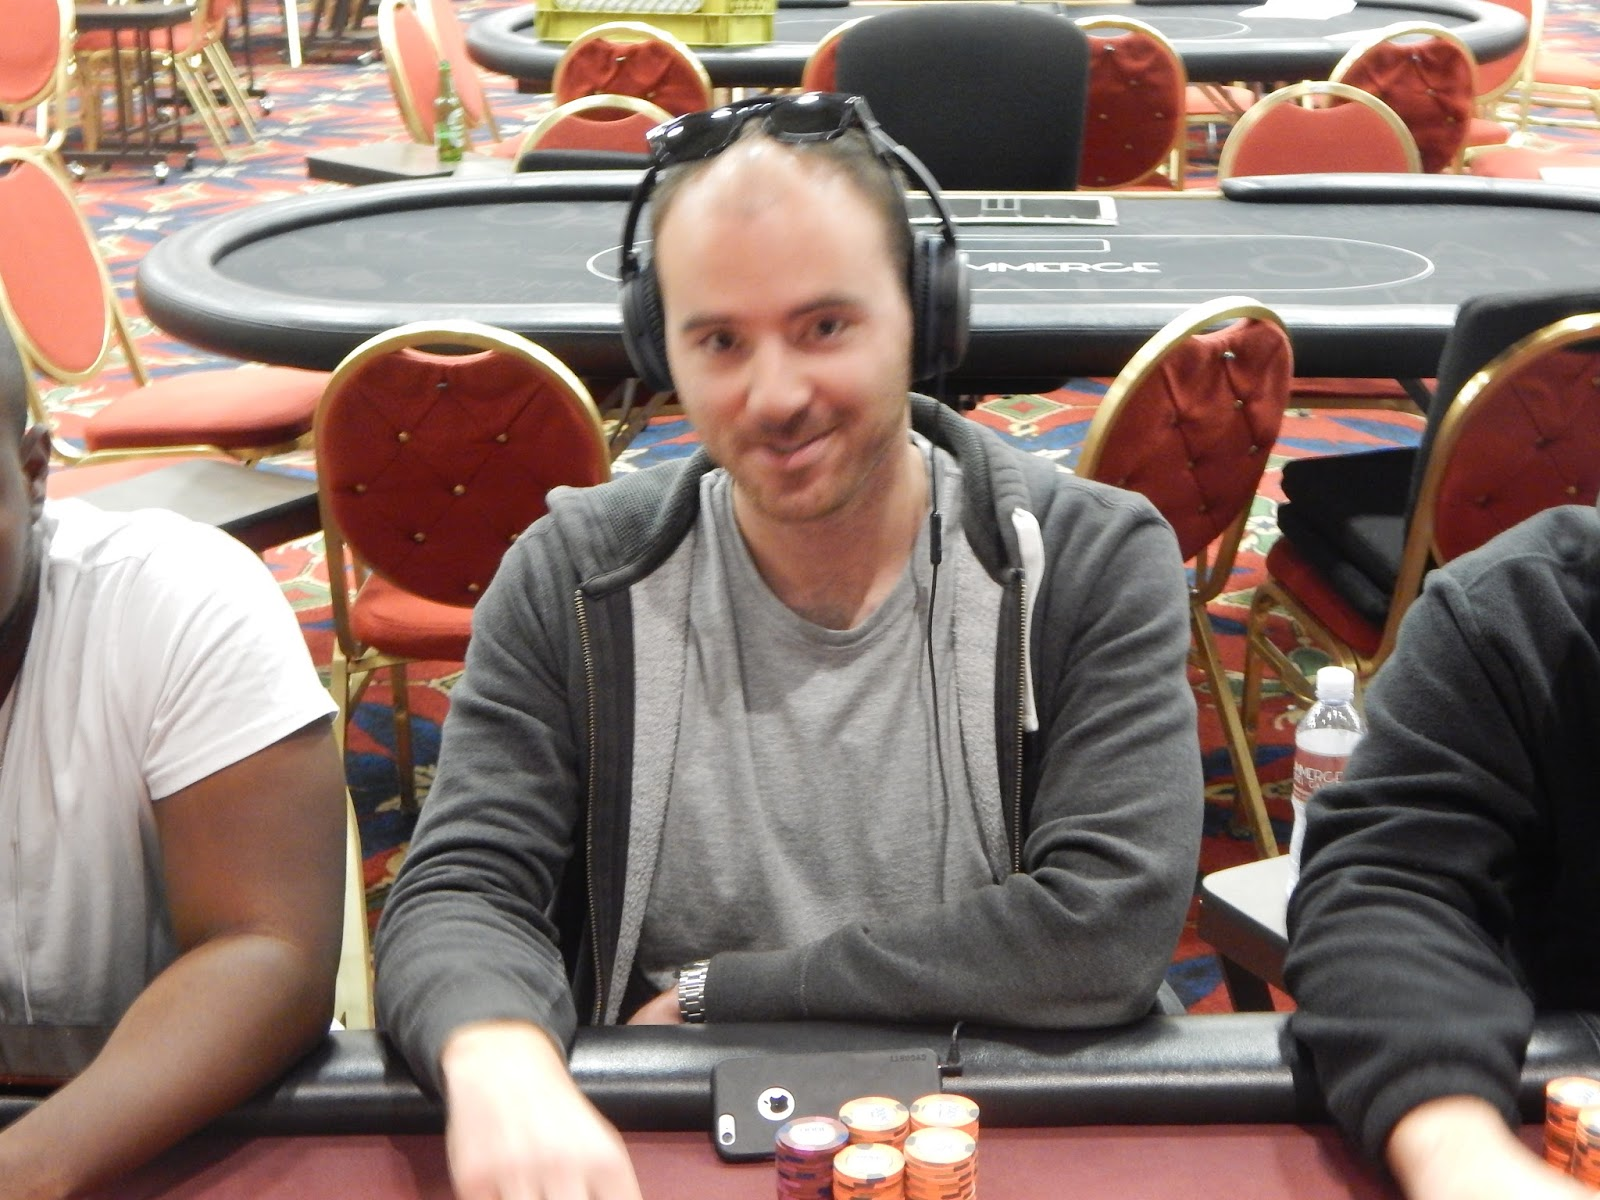 commerce casino tour nts  hunter moss eliminated in 3rd place 11 040